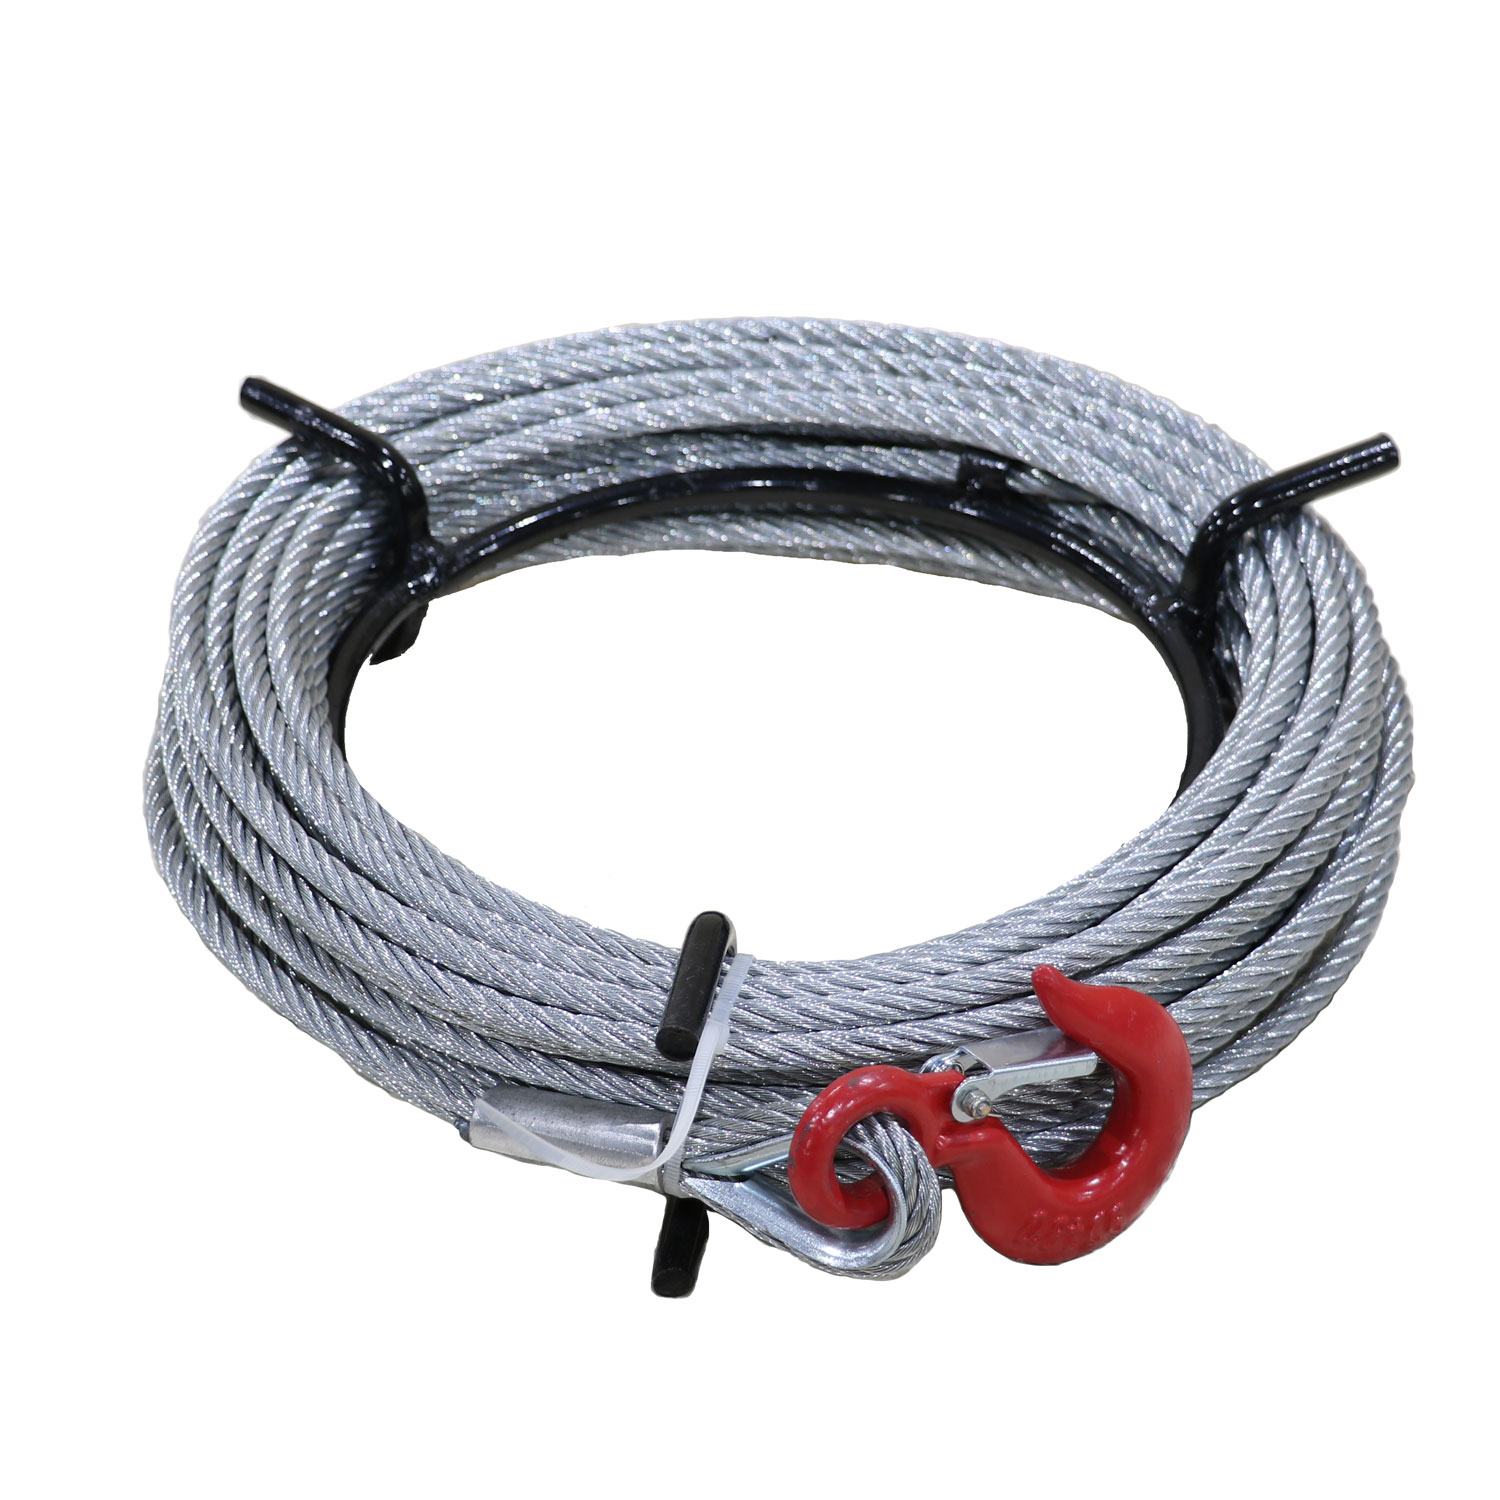 Replacement Cable for 1763 lbs Capacity, Tyler Tool Aluminum Wire ...